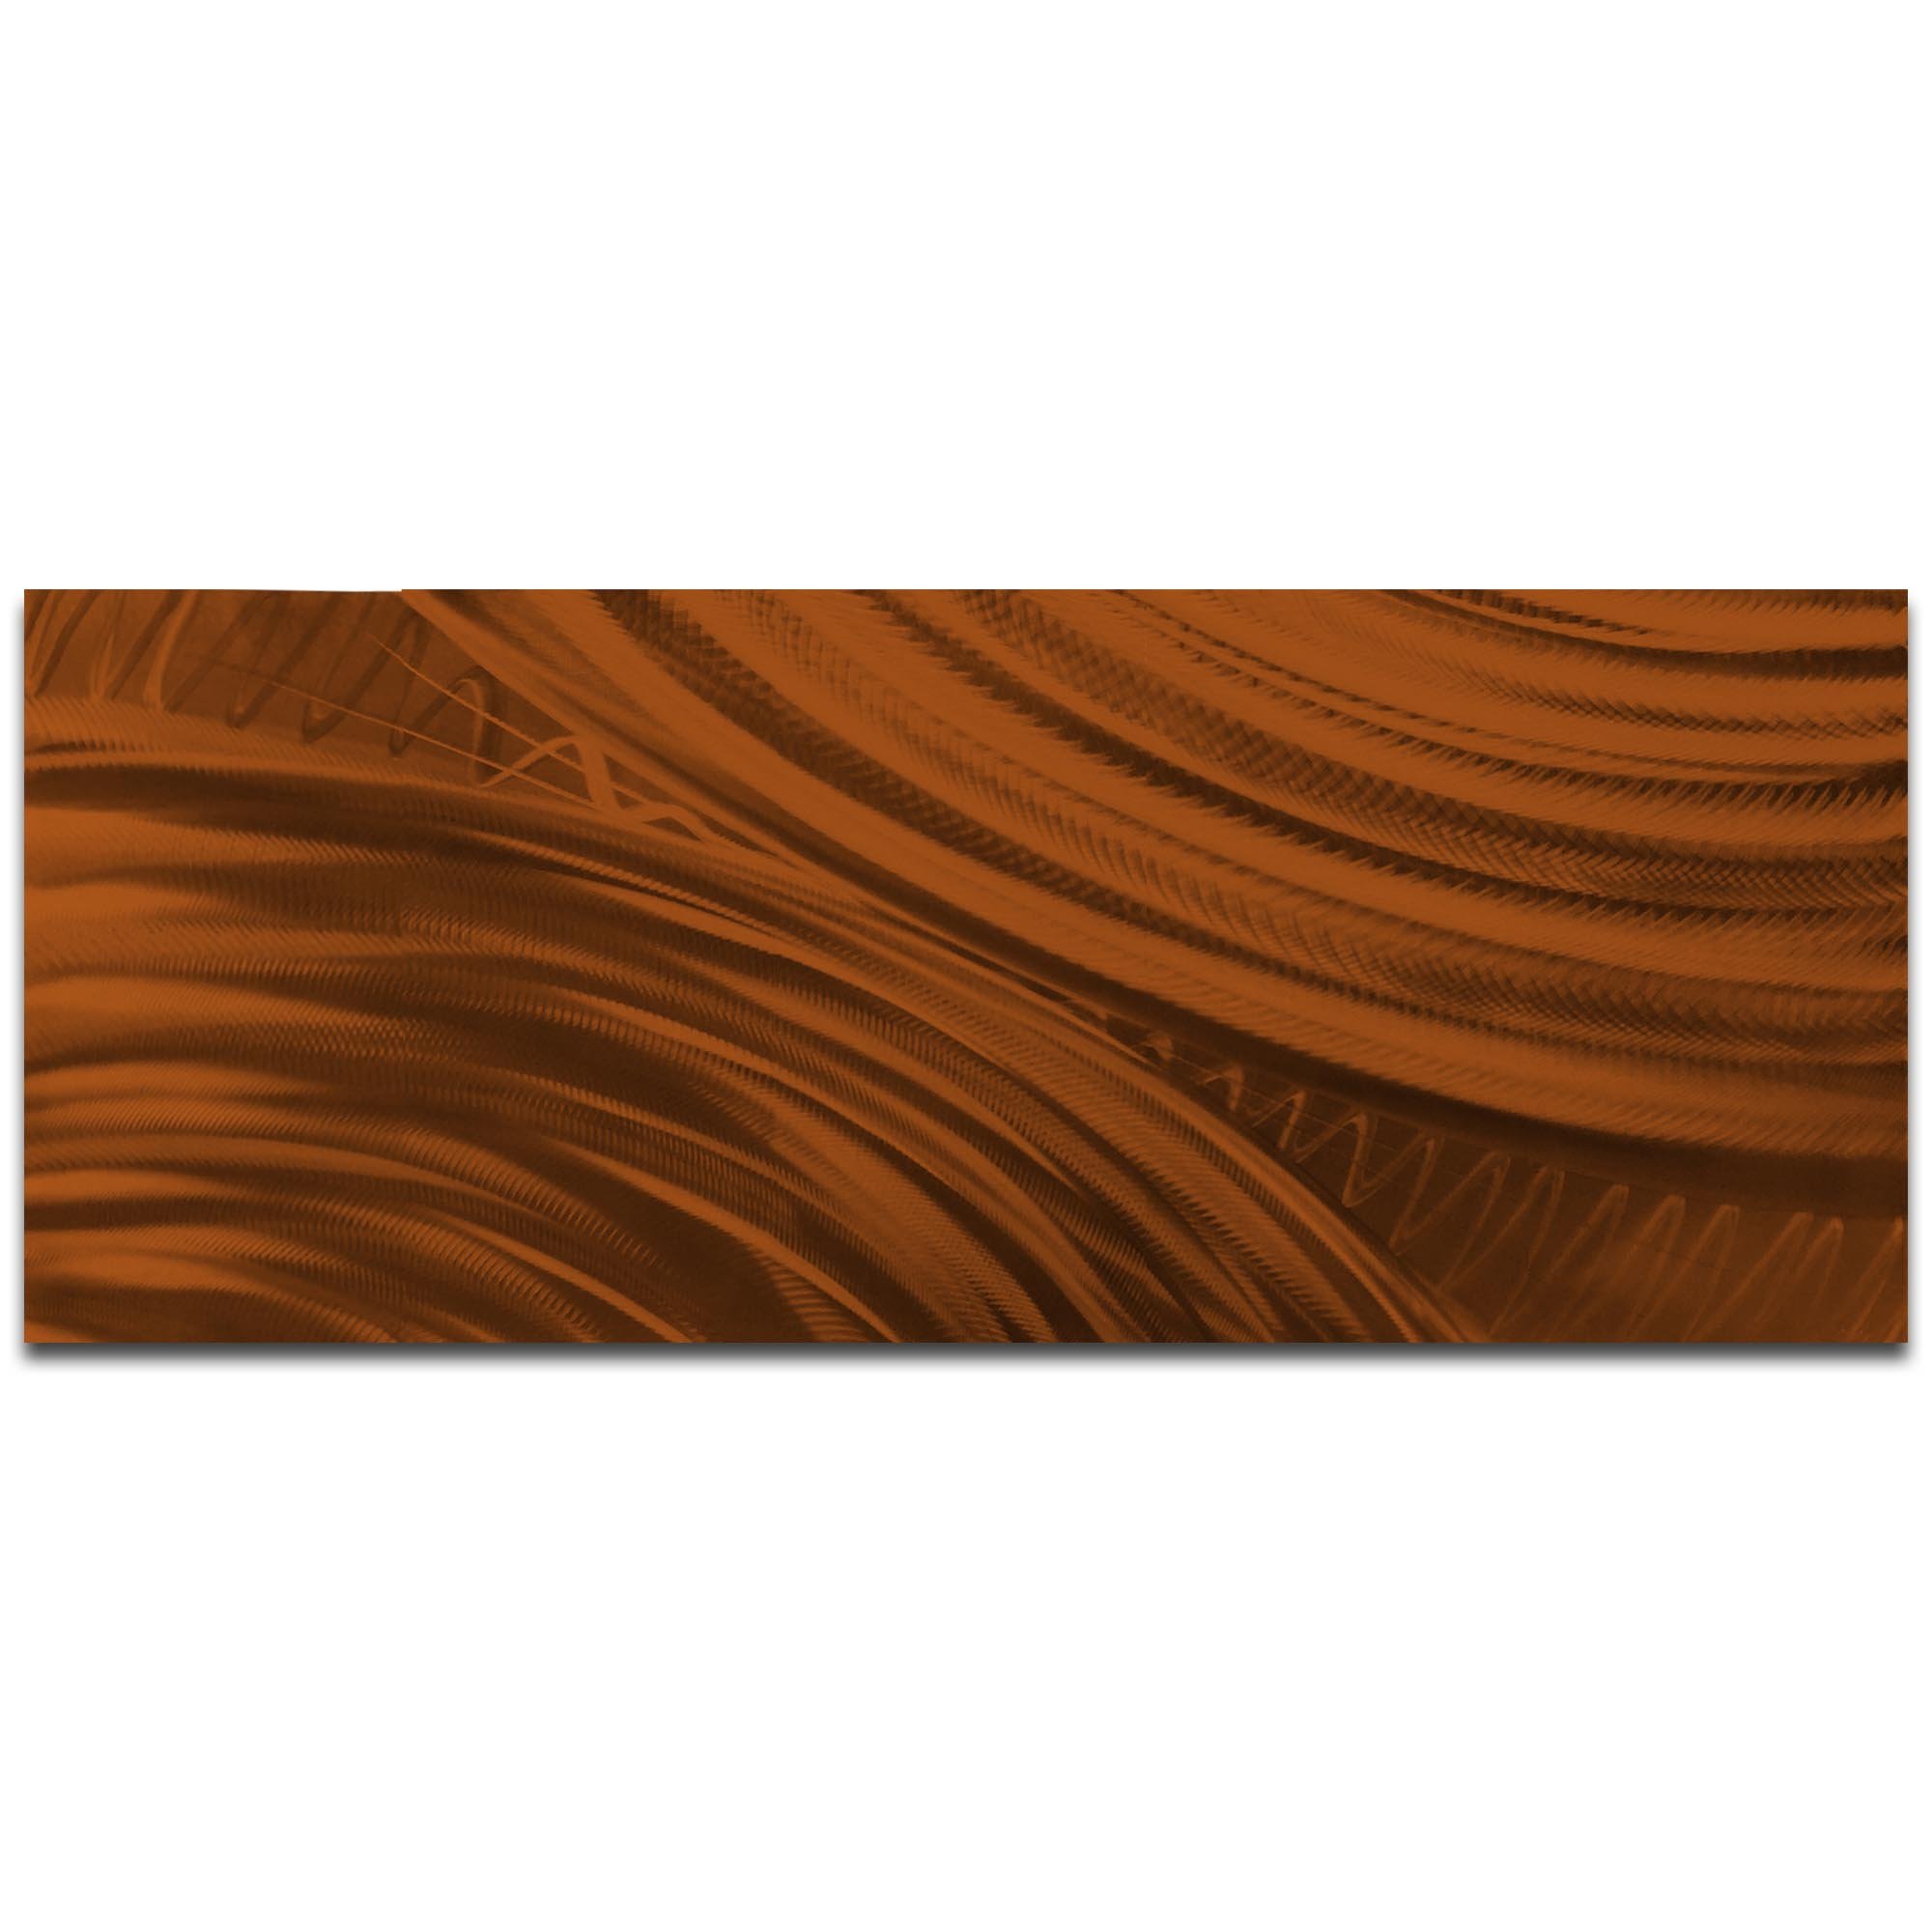 Helena Martin 'Moment of Impact Brown' 60in x 24in Original Abstract Art on Ground and Painted Metal